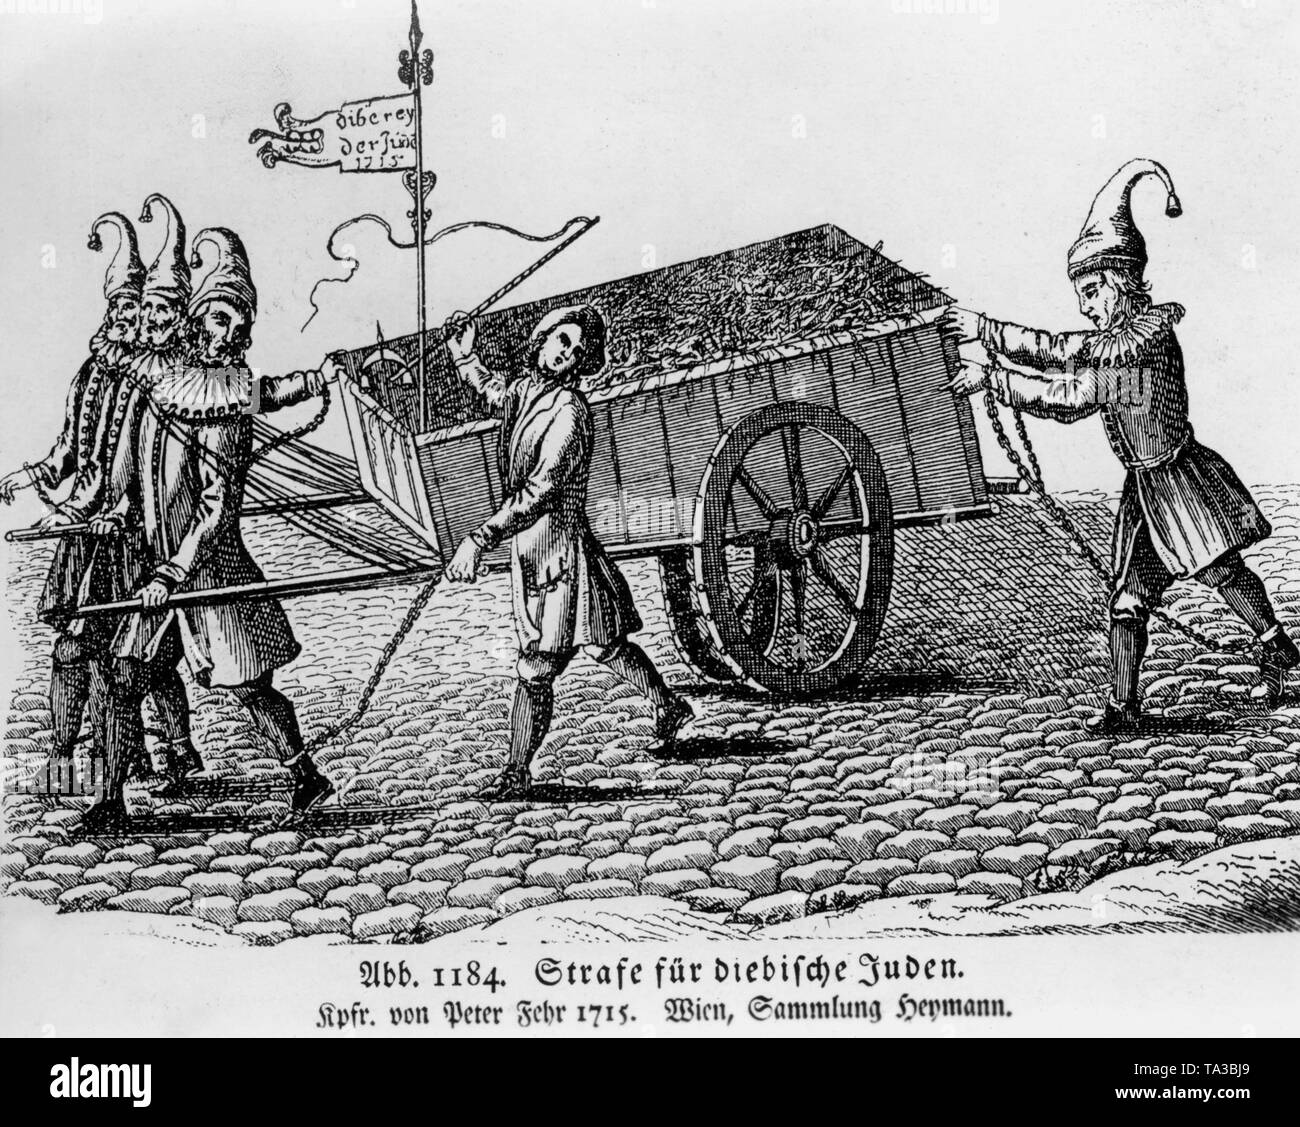 This copper engraving by Peter Fehr shows a punishment for thieving Jews. - Stock Image